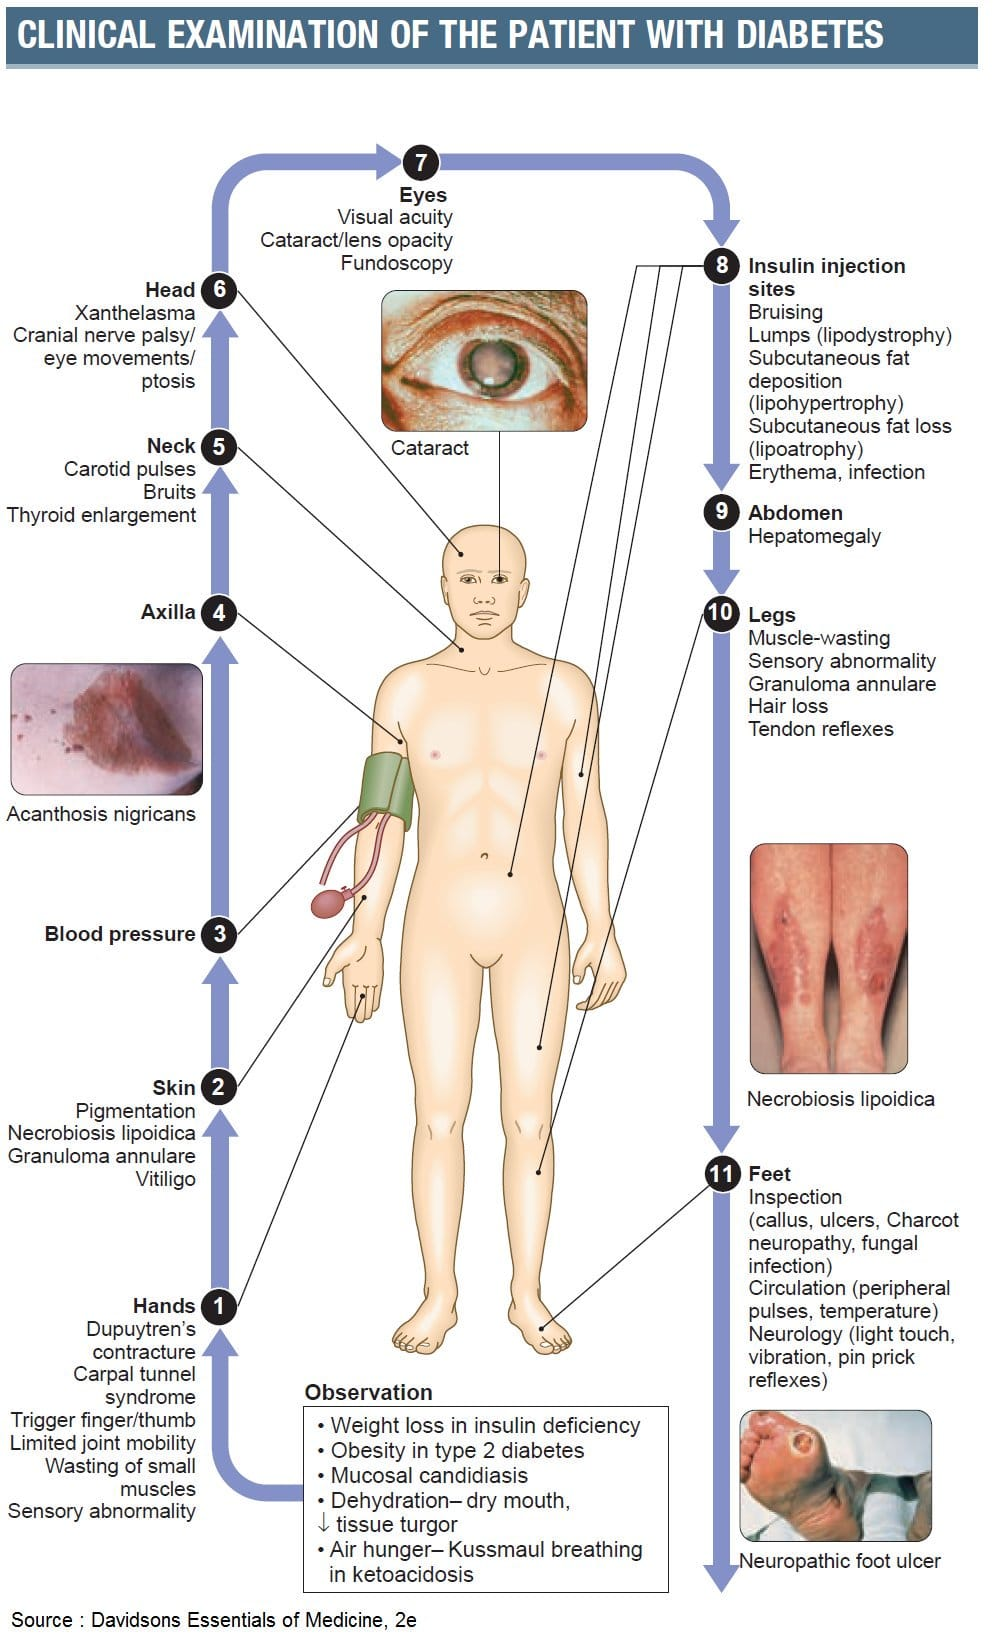 Clinical examination of patients with diabetes